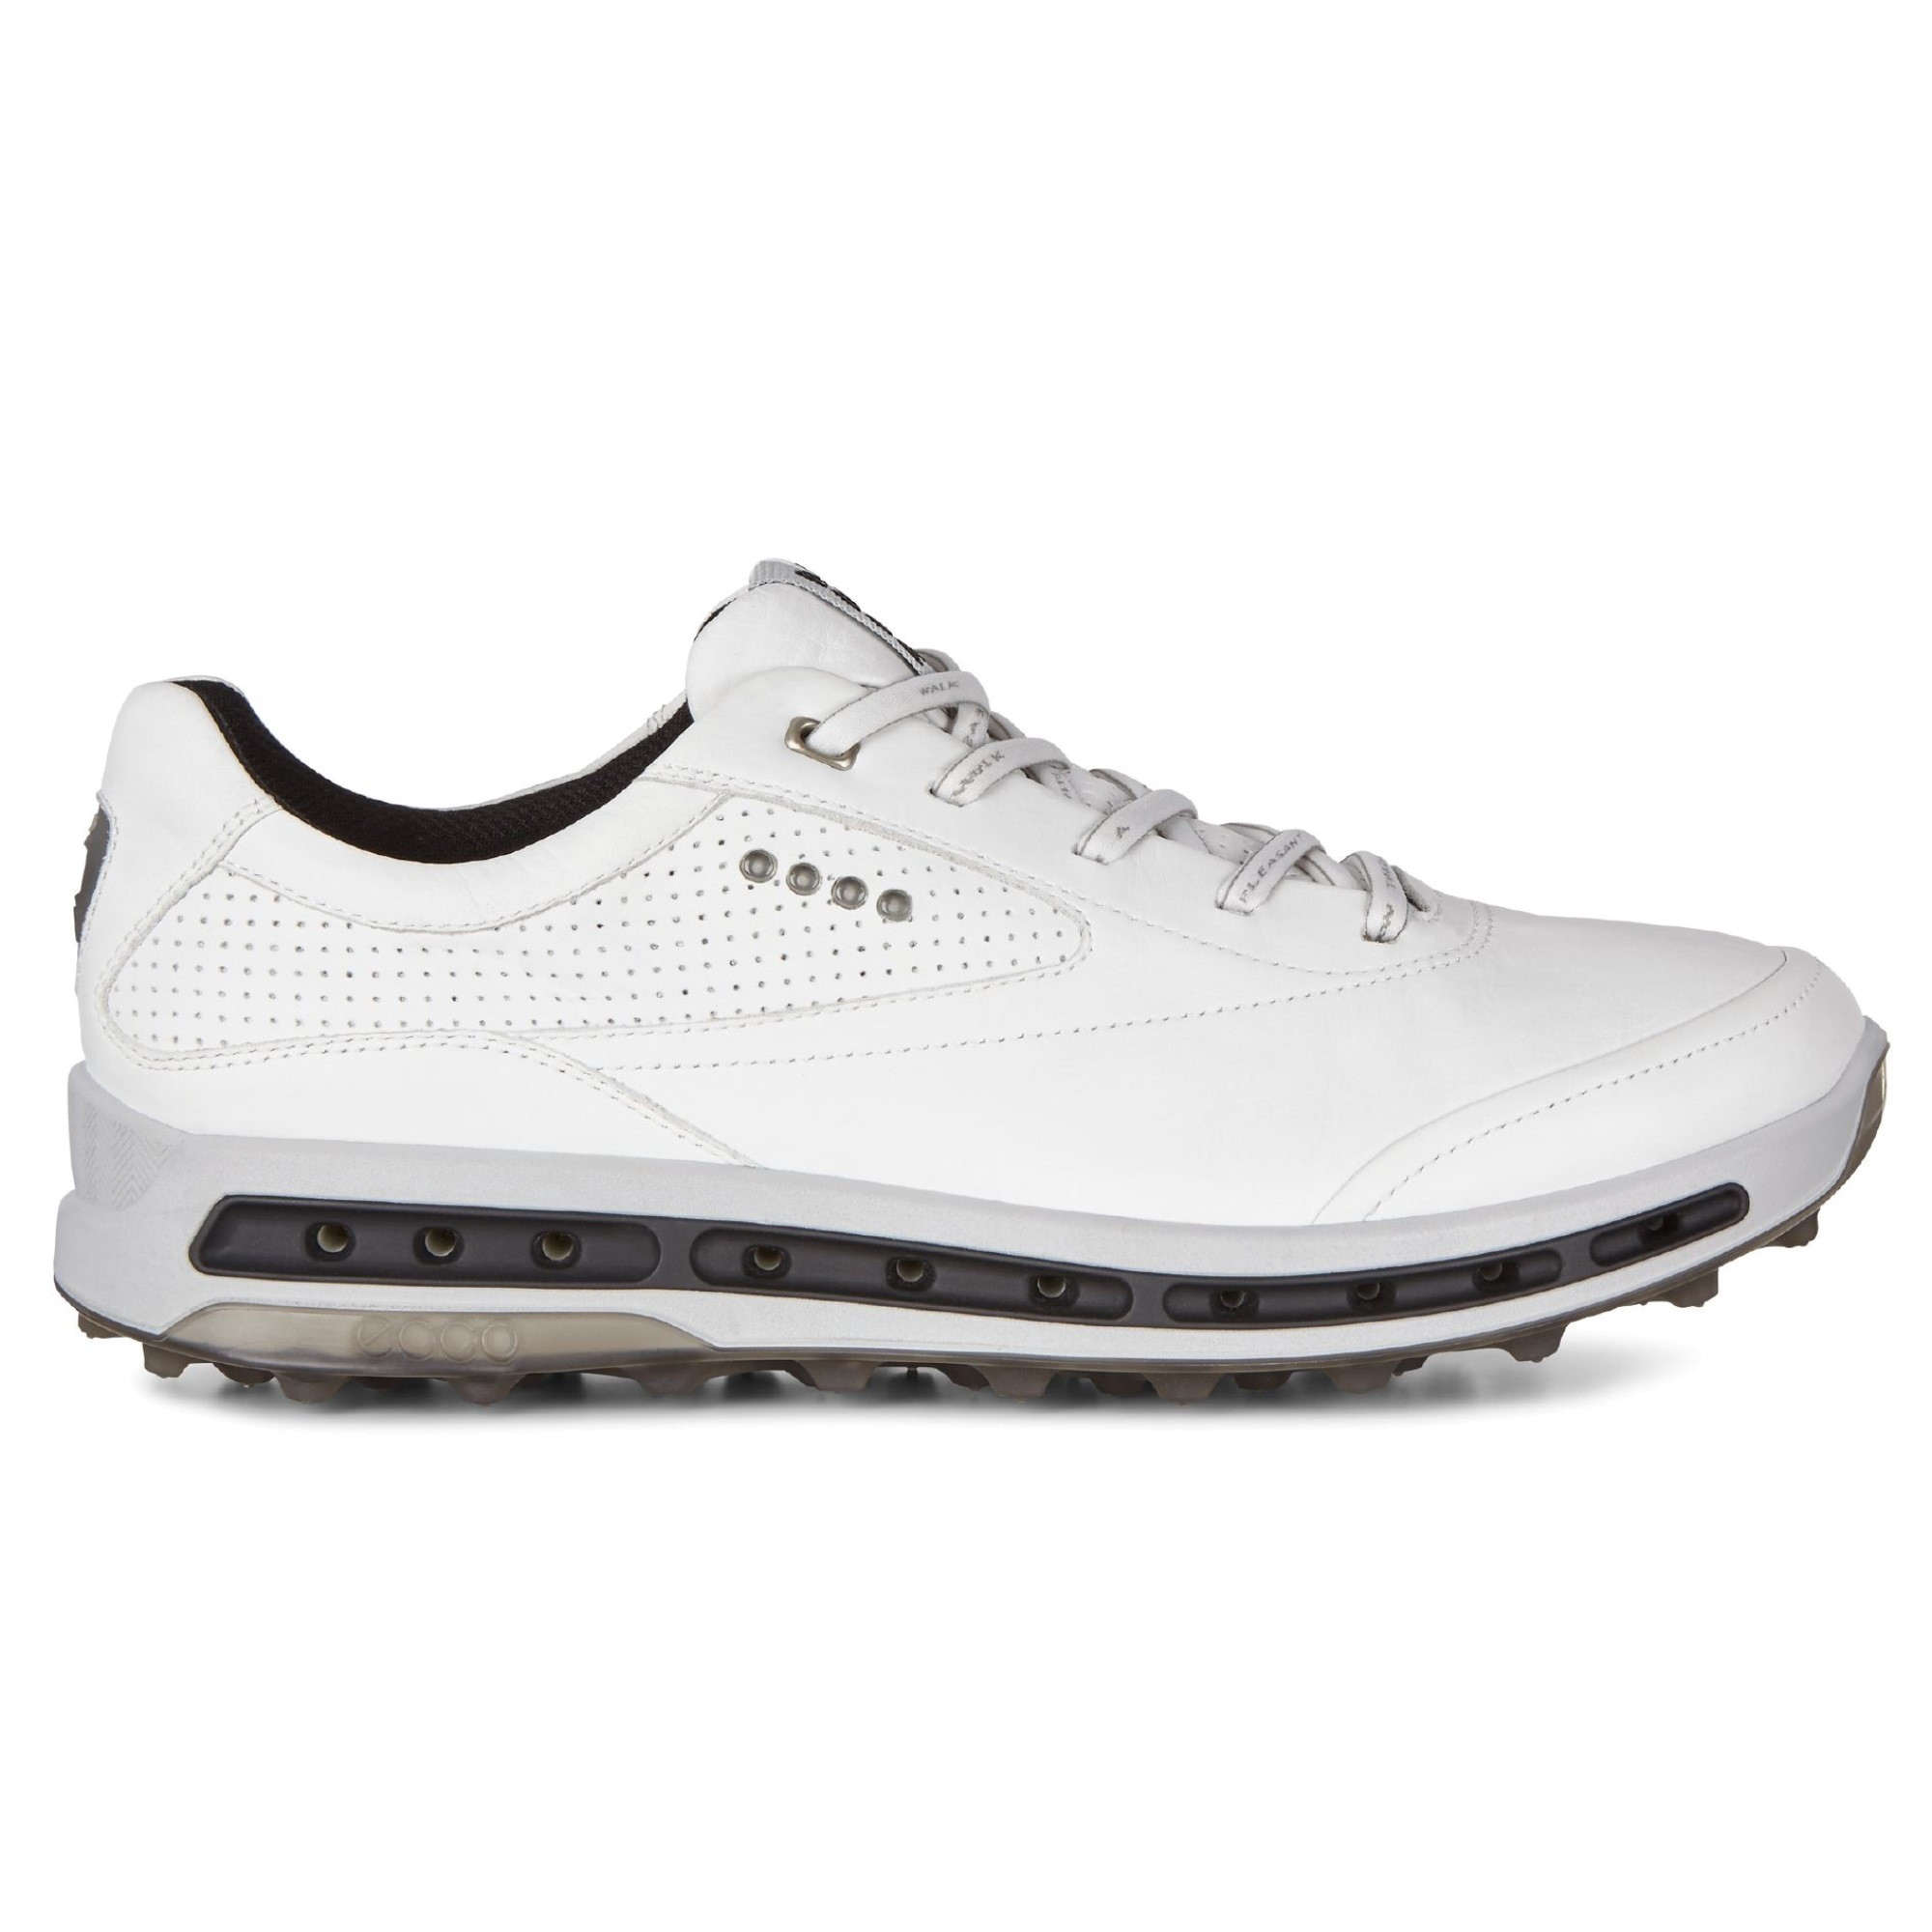 ECCO Cool Pro golf shoe review